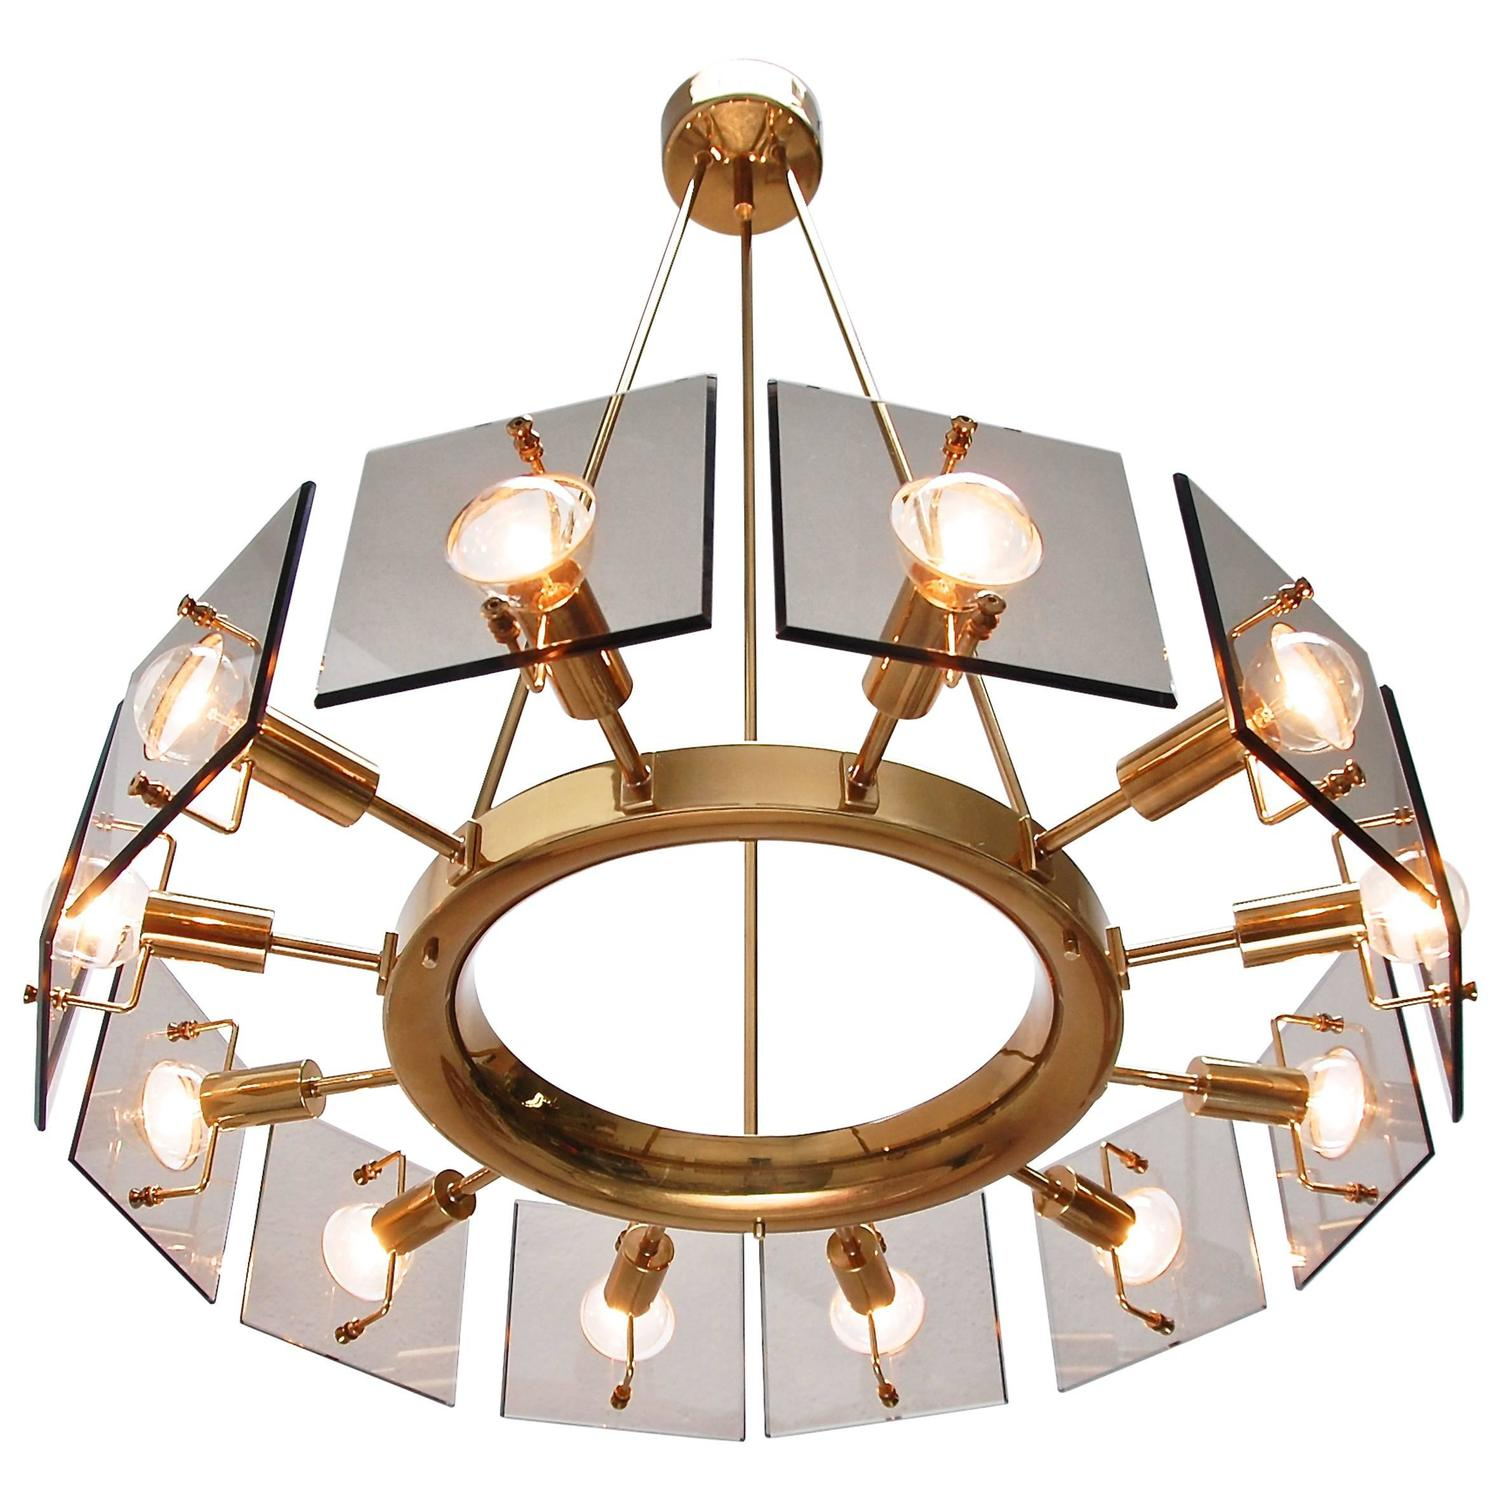 Twelve light italian chandelier by crystal arte for sale at 1stdibs aloadofball Images